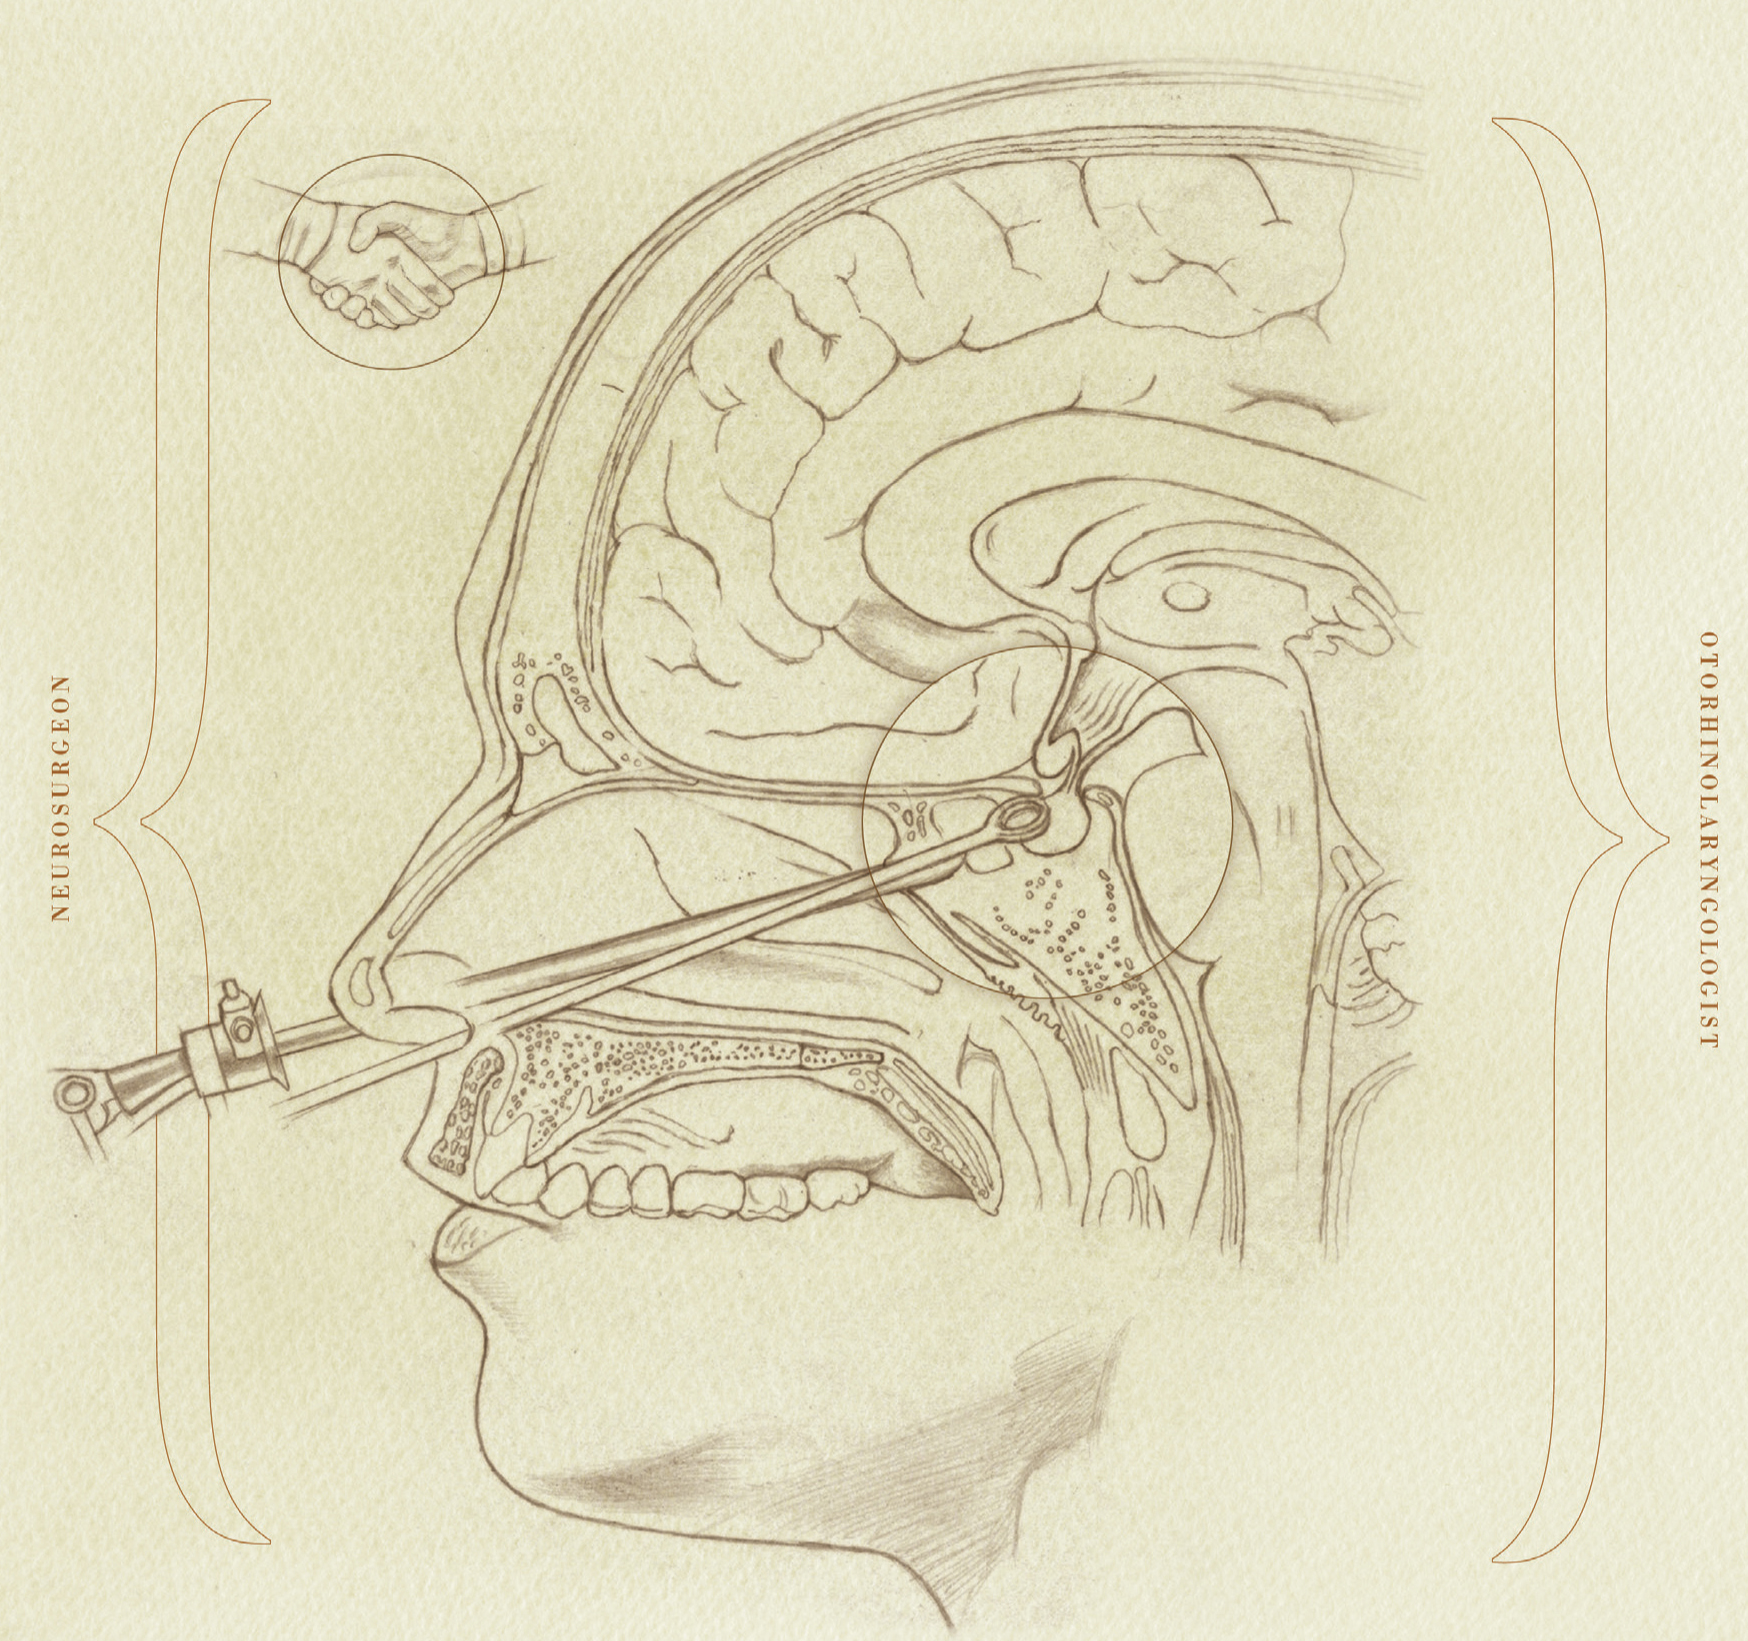 image from A Collaborative Approach Offers Patients a Less Invasive Alternative for Surgical Excision of Pituitary Tumors